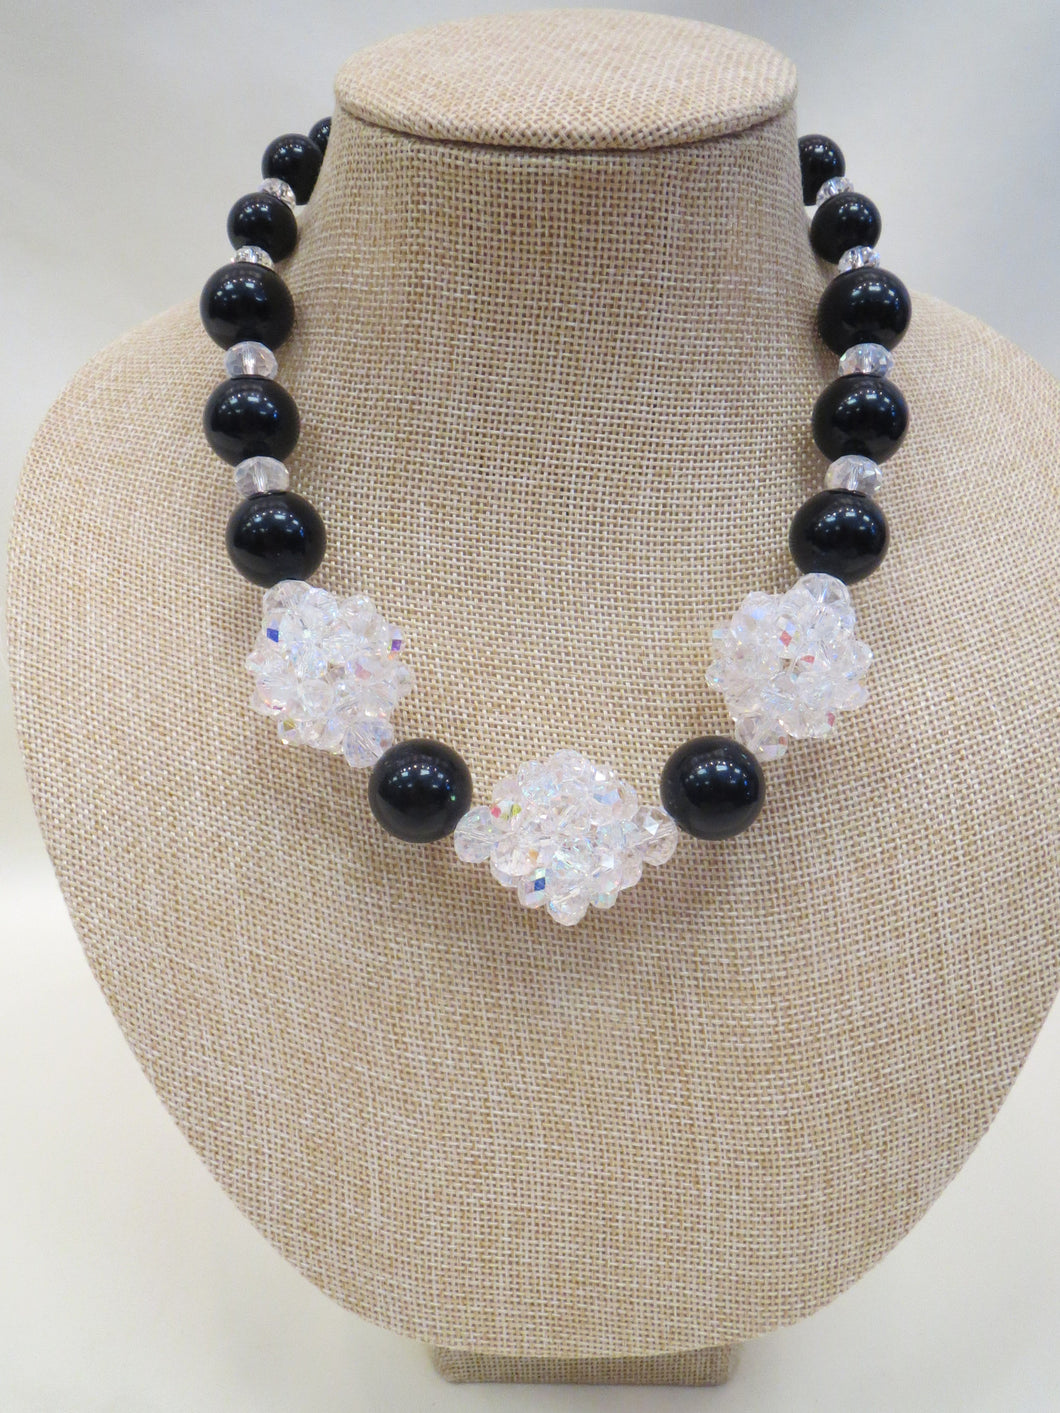 ADO | Black & Clear Ball Necklace - All Decd Out